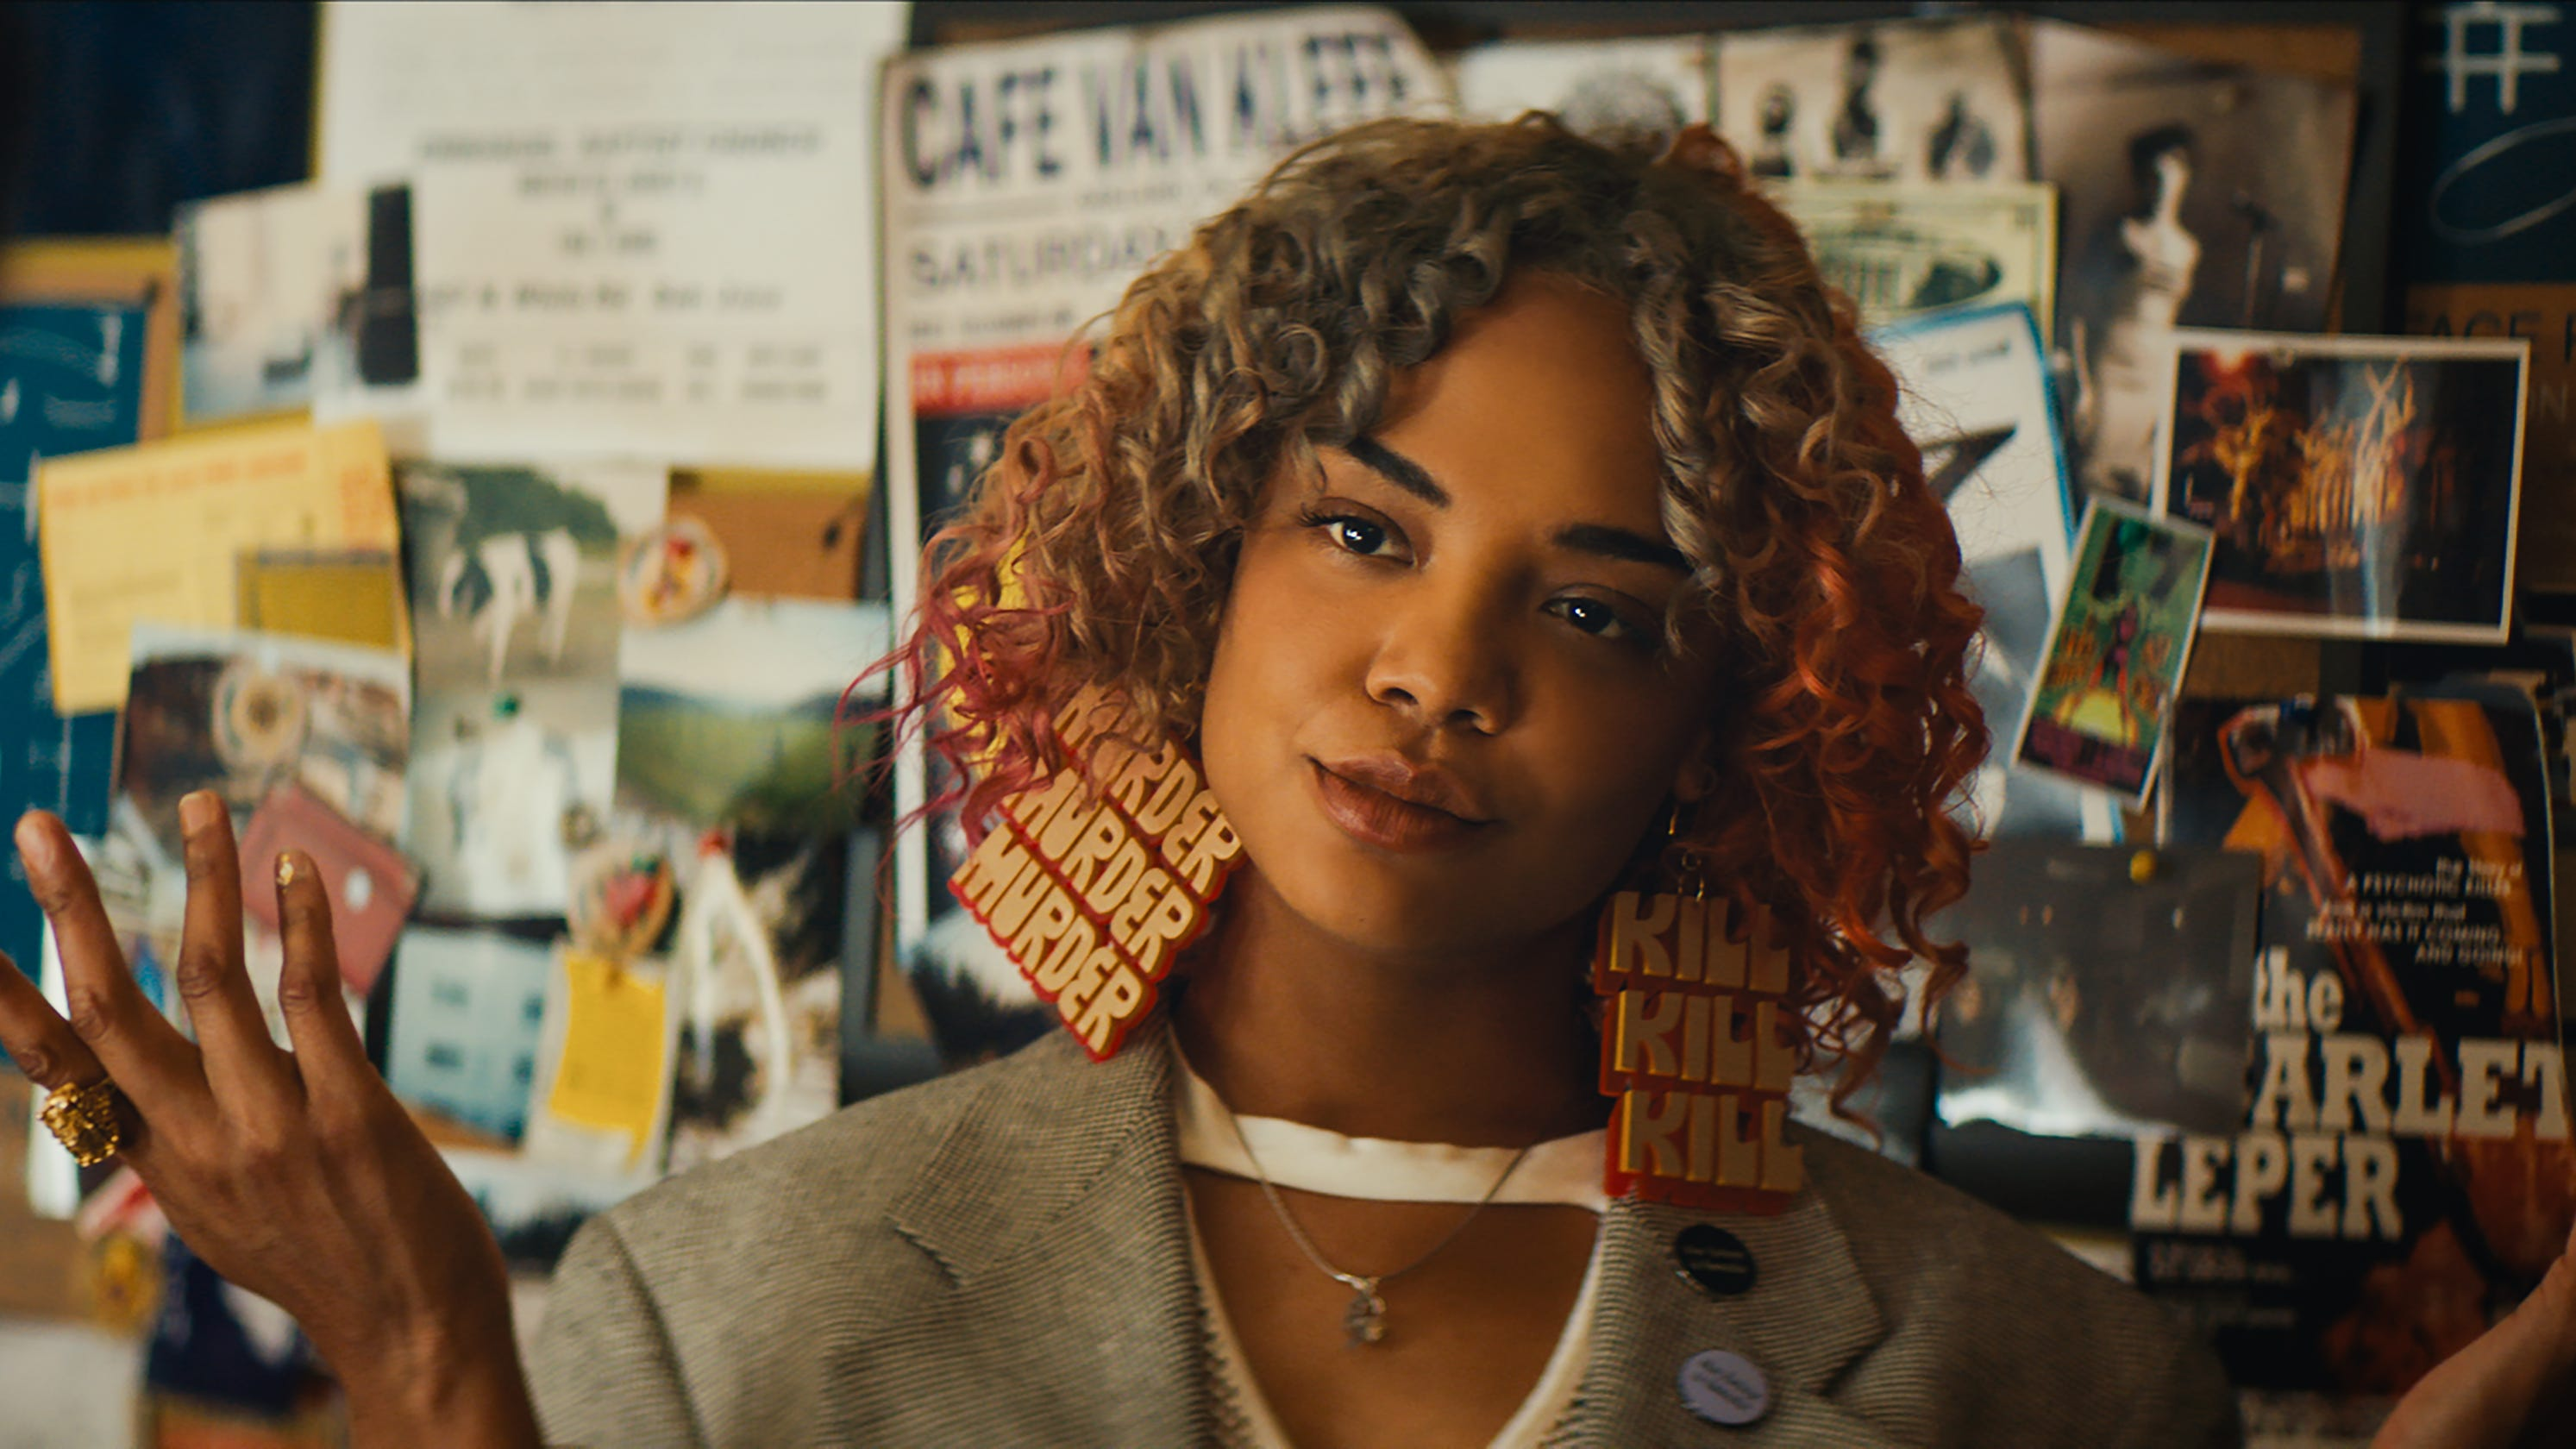 The best movies of 2018: Sorry to Bother You, Hereditary and